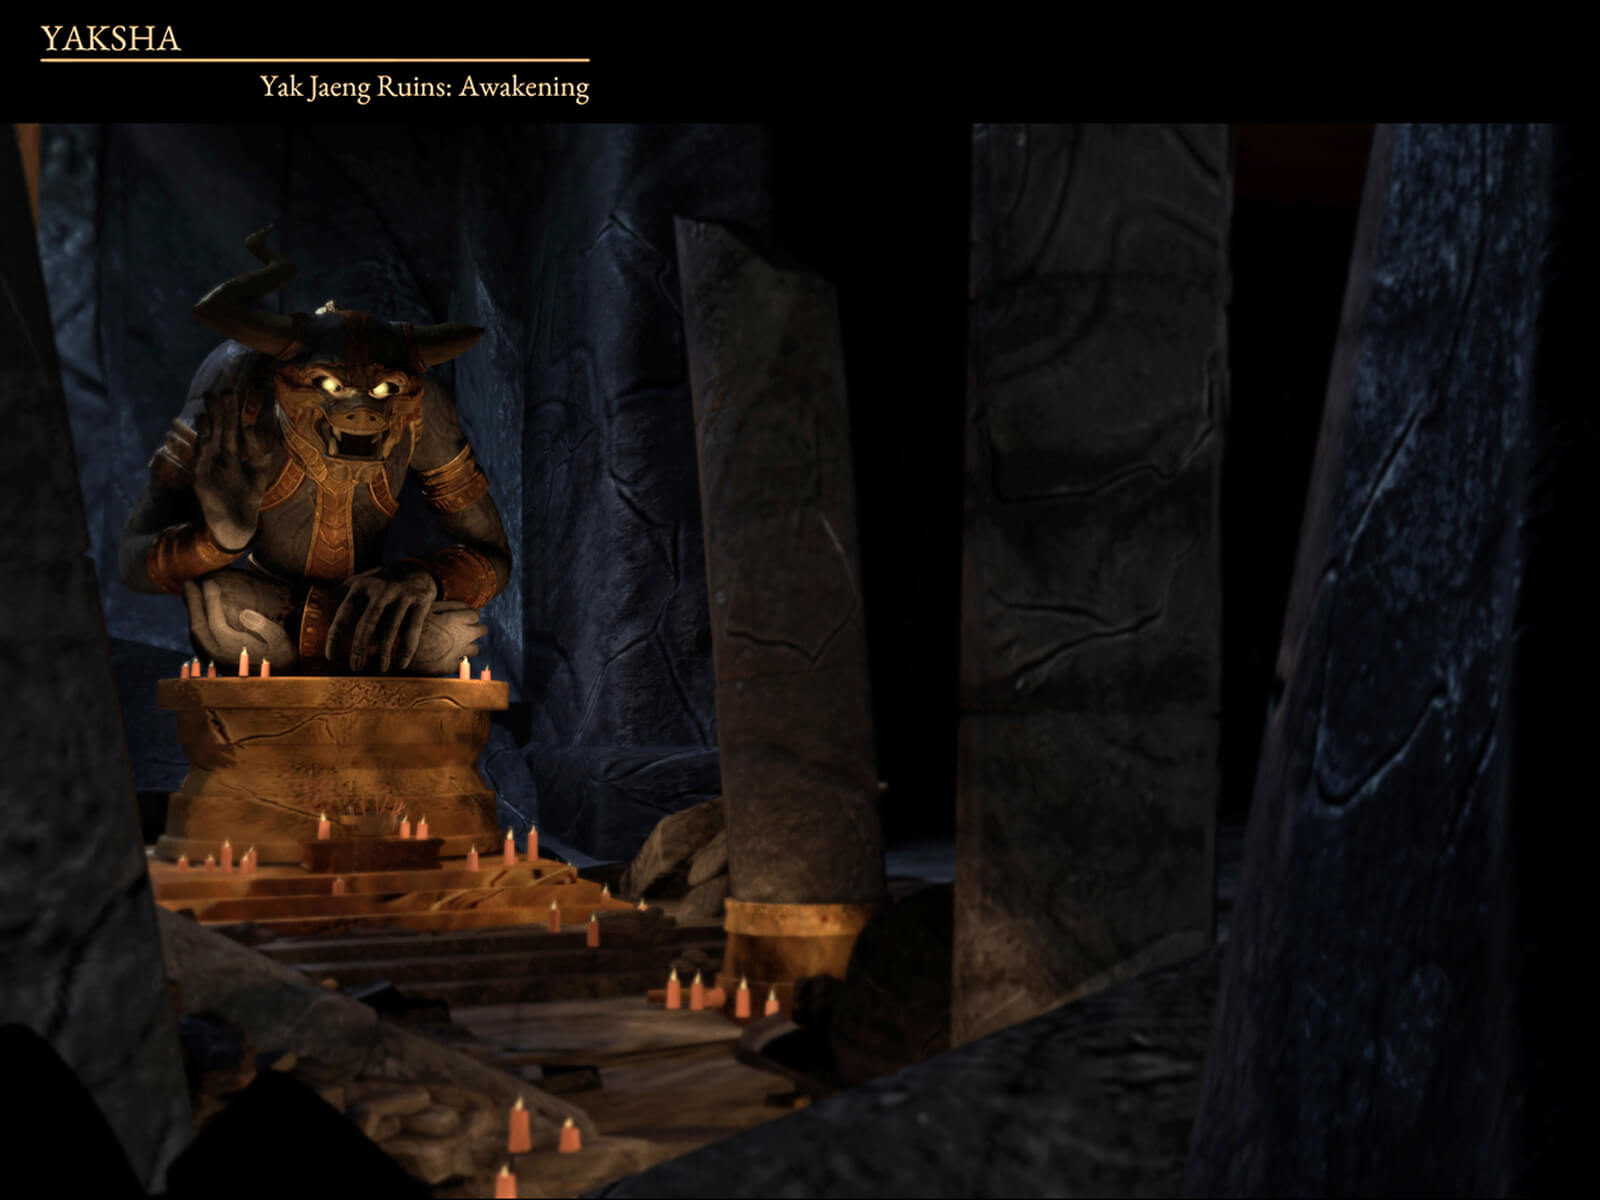 computer-generated 3D model of a creature with glowing eyes atop a pedestal in a cave strewn with lit candles